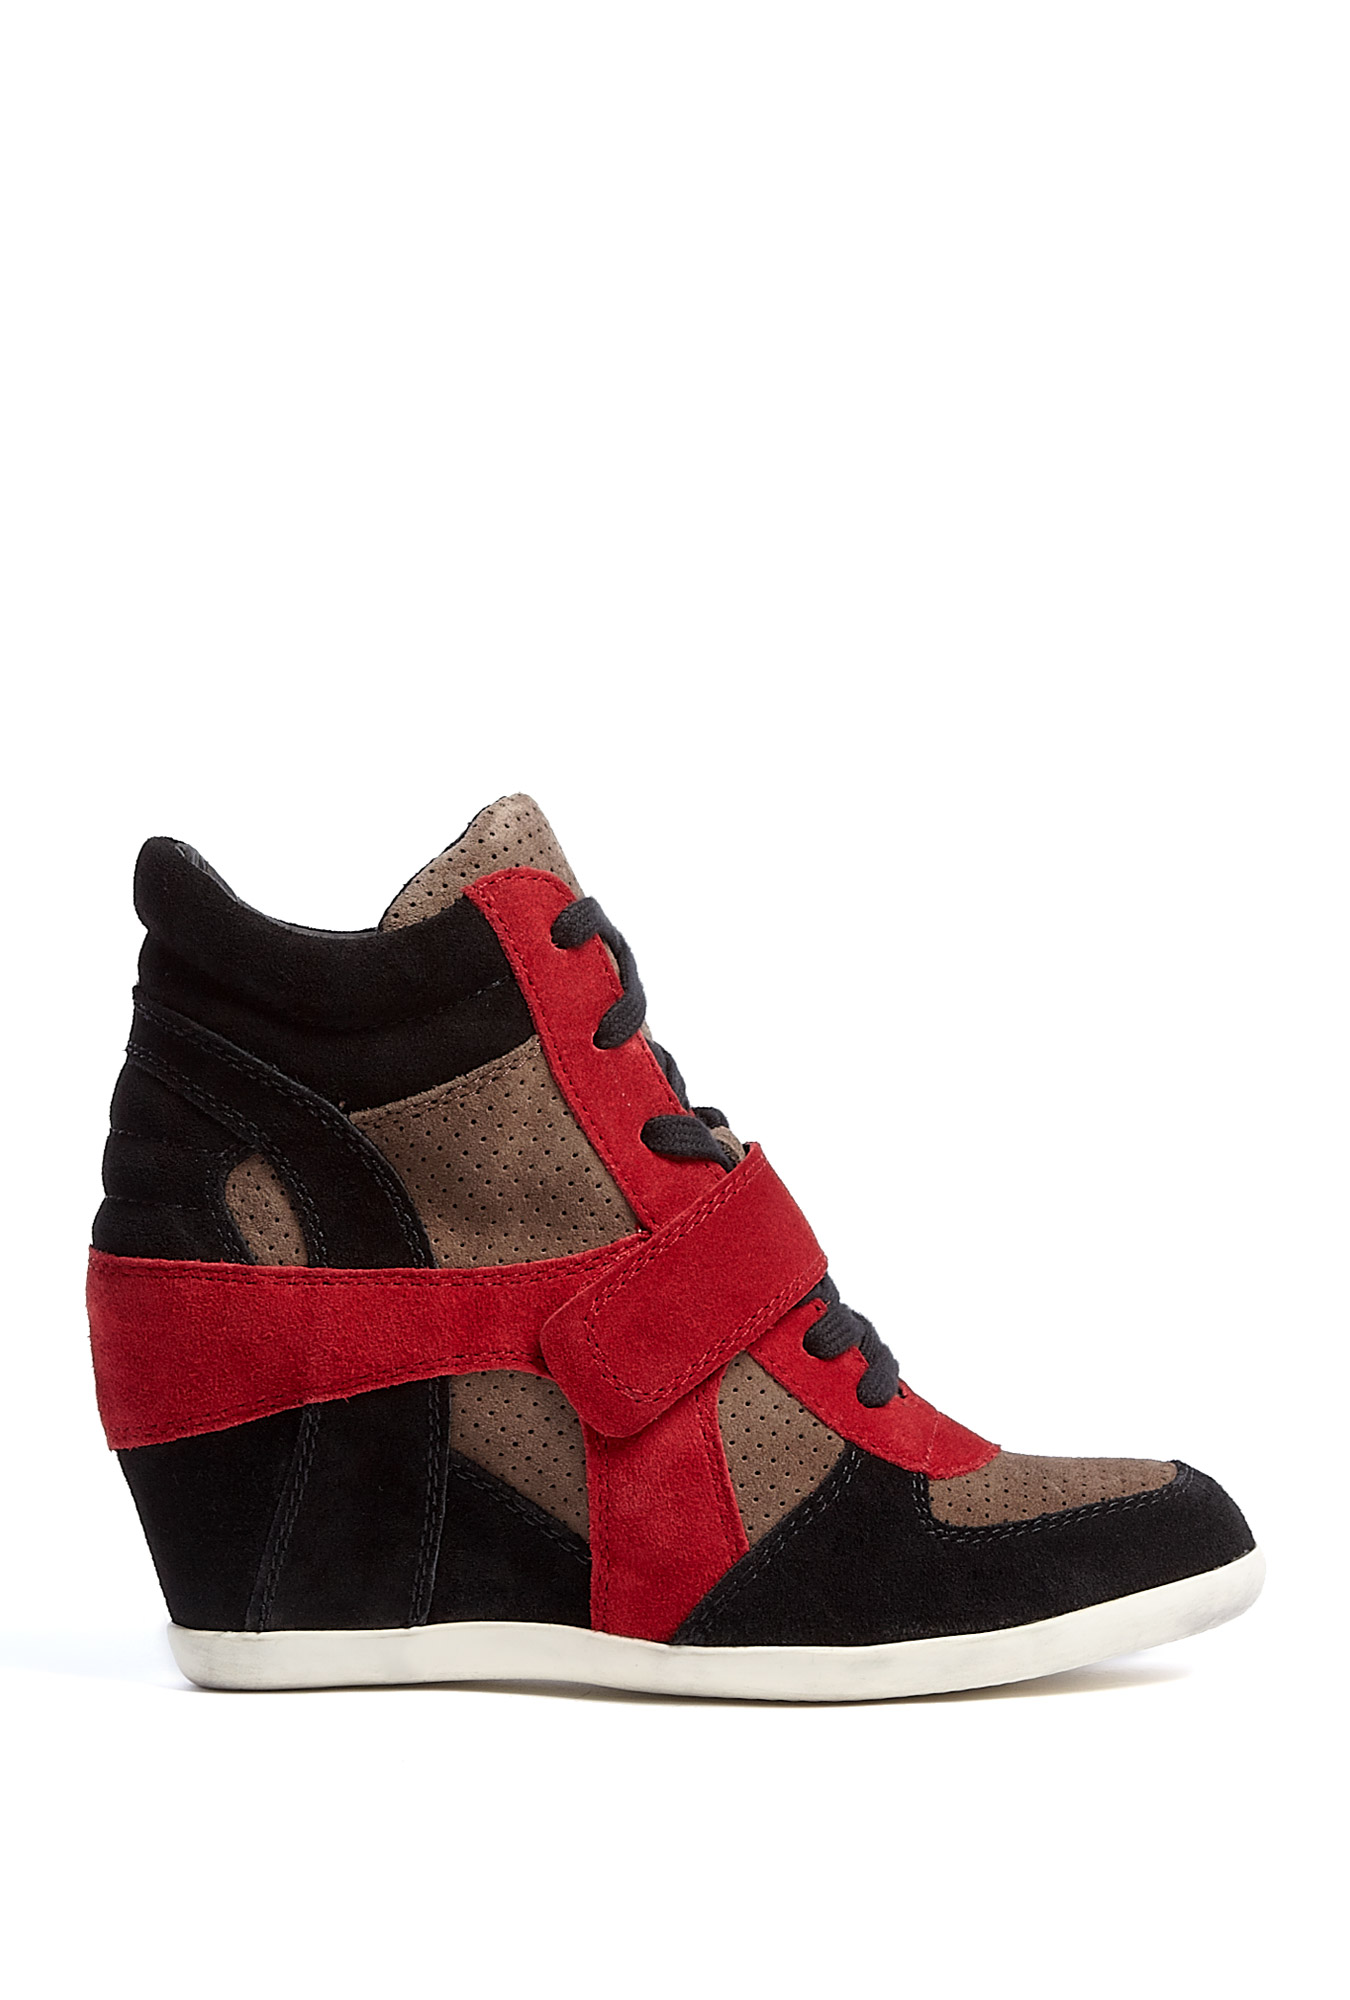 ash black taupe and winter red suede bowie wedge trainers